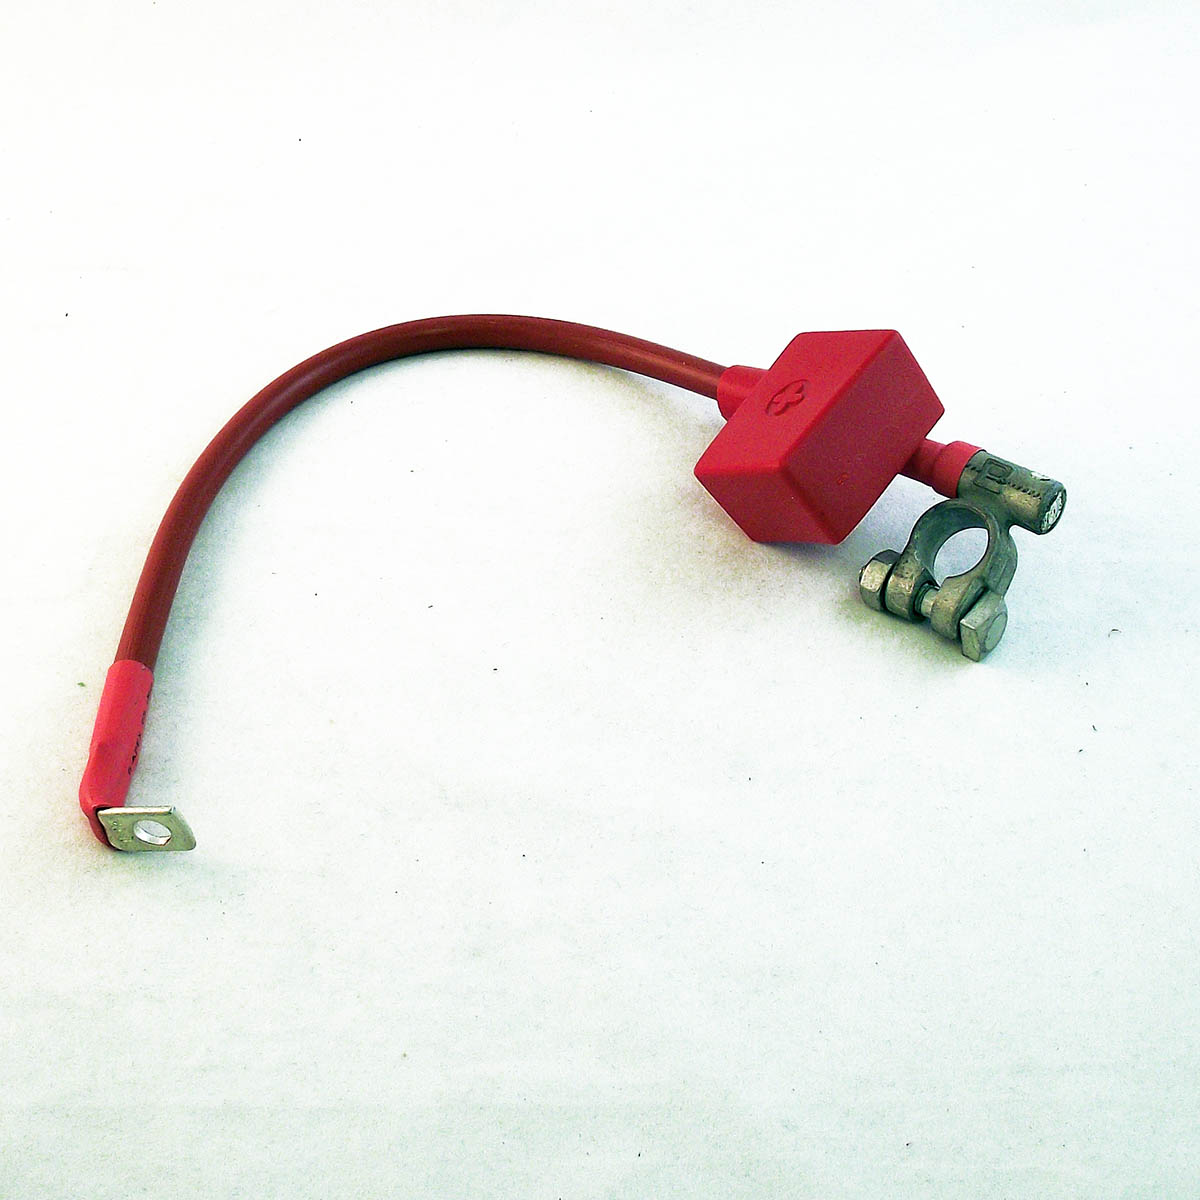 Triumph Tr7 Battery To Solenoid Lead